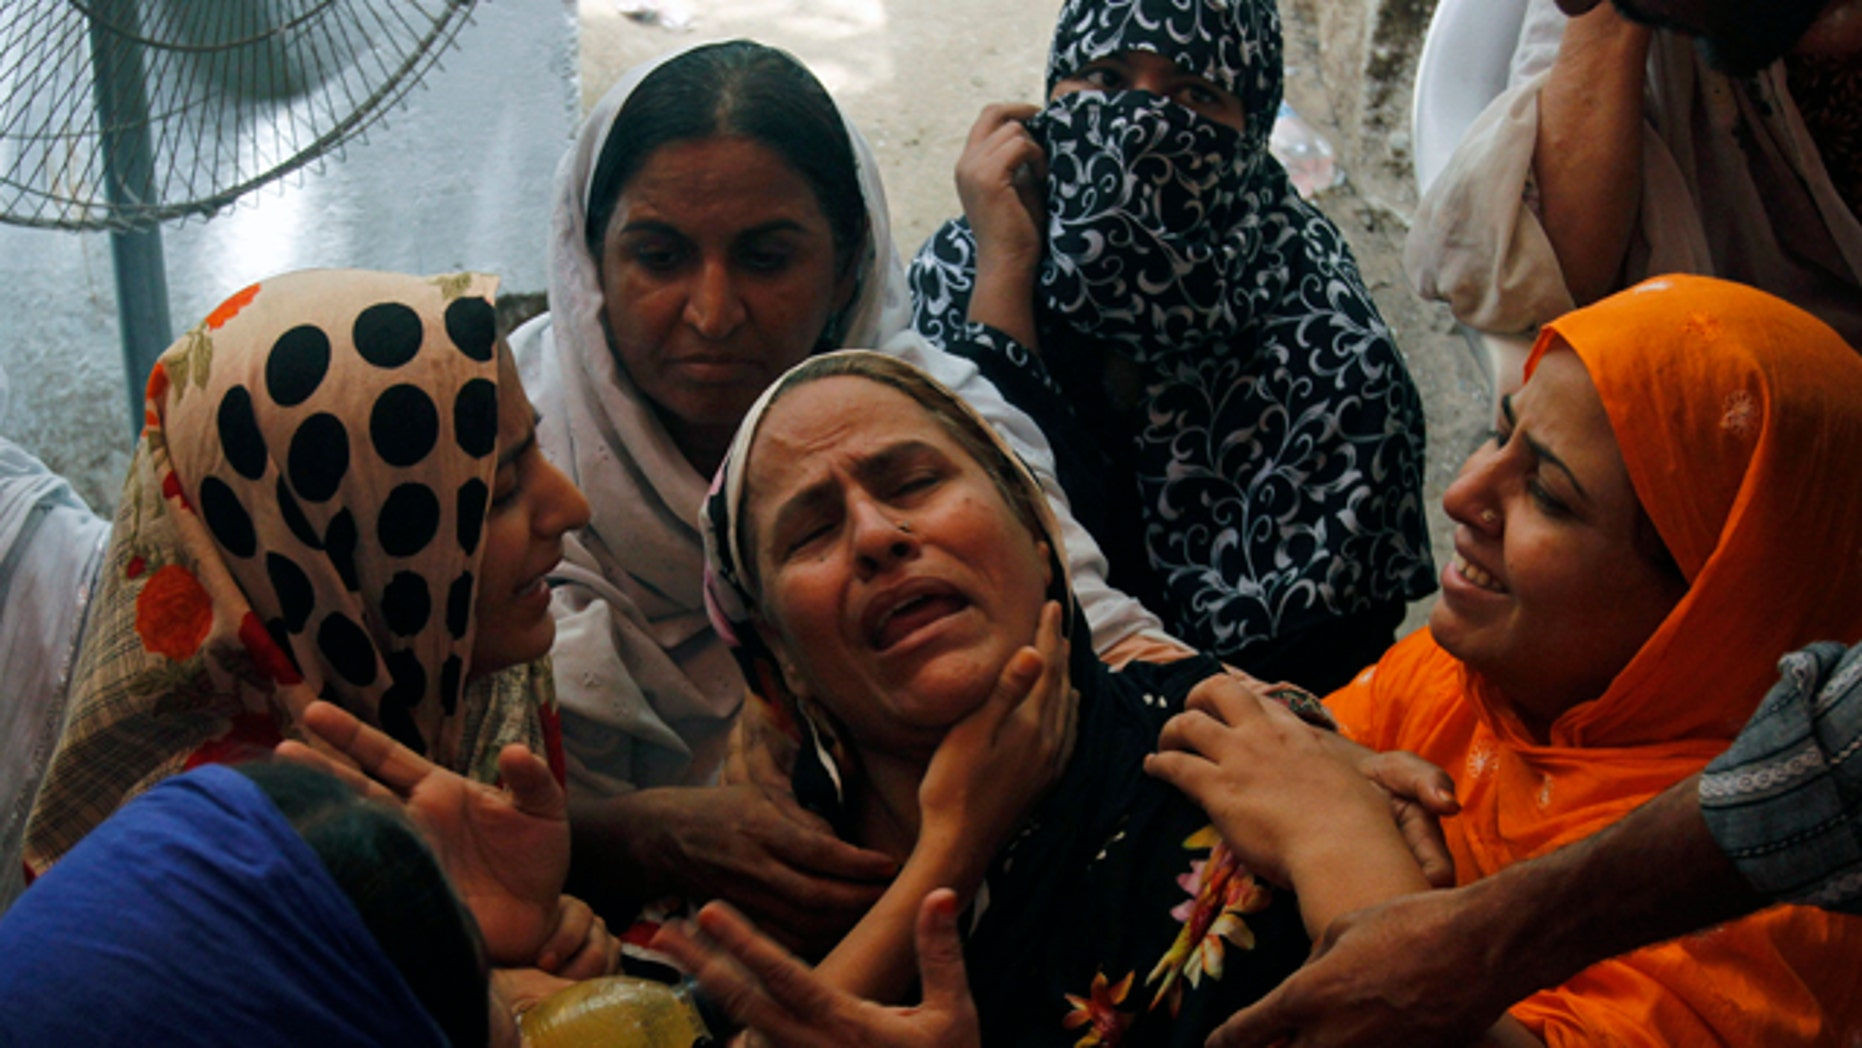 Aug. 19: People comfort a woman who lost her son in Karachi, Pakistan.